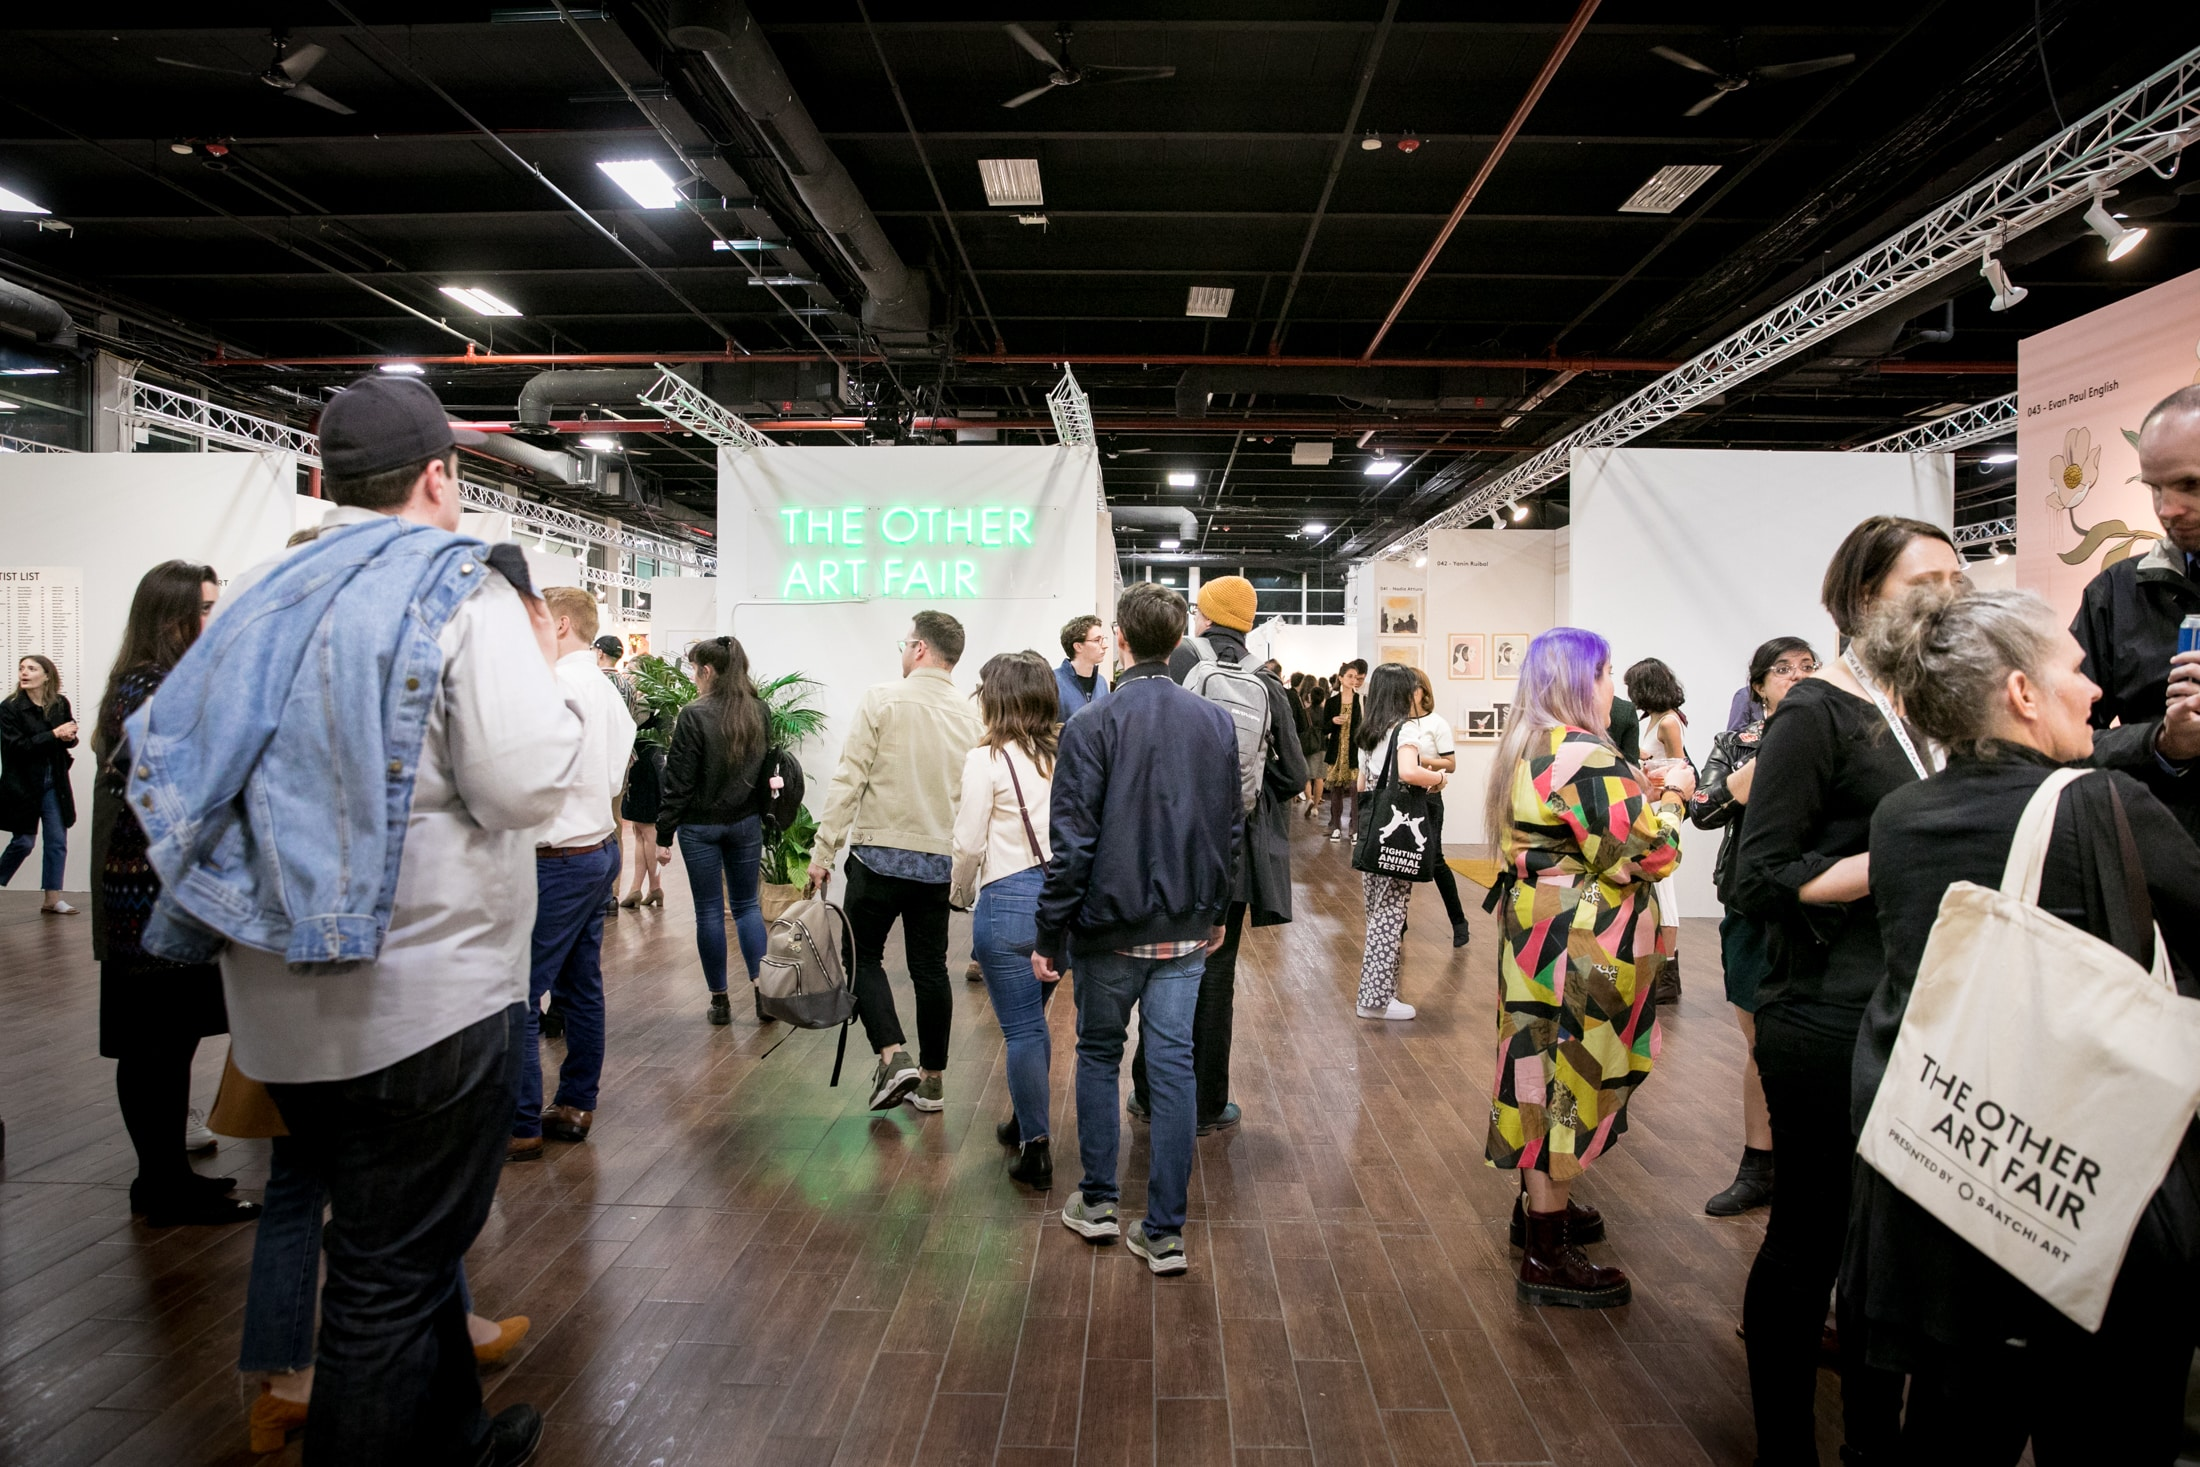 Brooklyn S Best Art Fair For Emerging Artists Is Now Accepting Applications For 2020 Bklyner